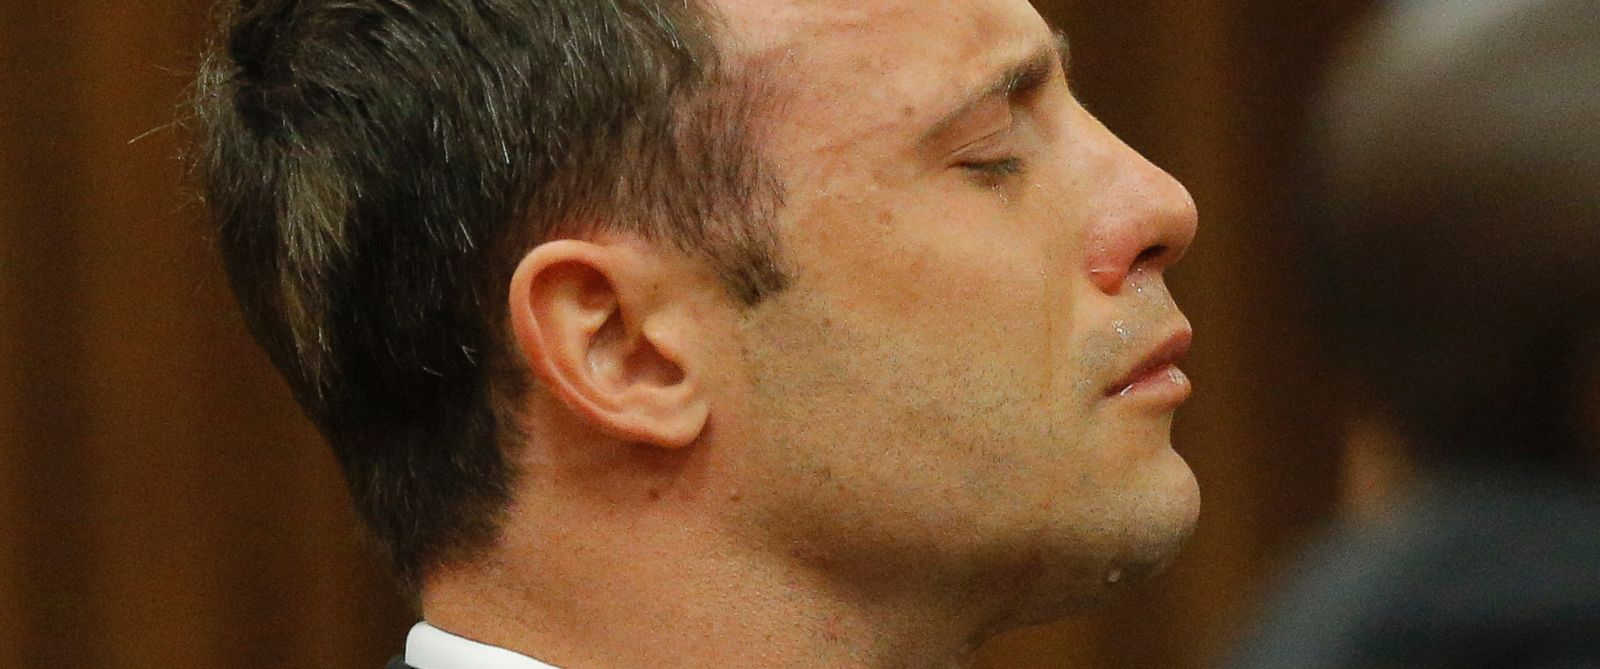 PHOTO: Oscar Pistorius reacts in the dock in Pretoria, South Africa, Sept. 11, 2014 as Judge Thokozile Masipa reads notes as she delivers her verdict in Pistorius murder trial.